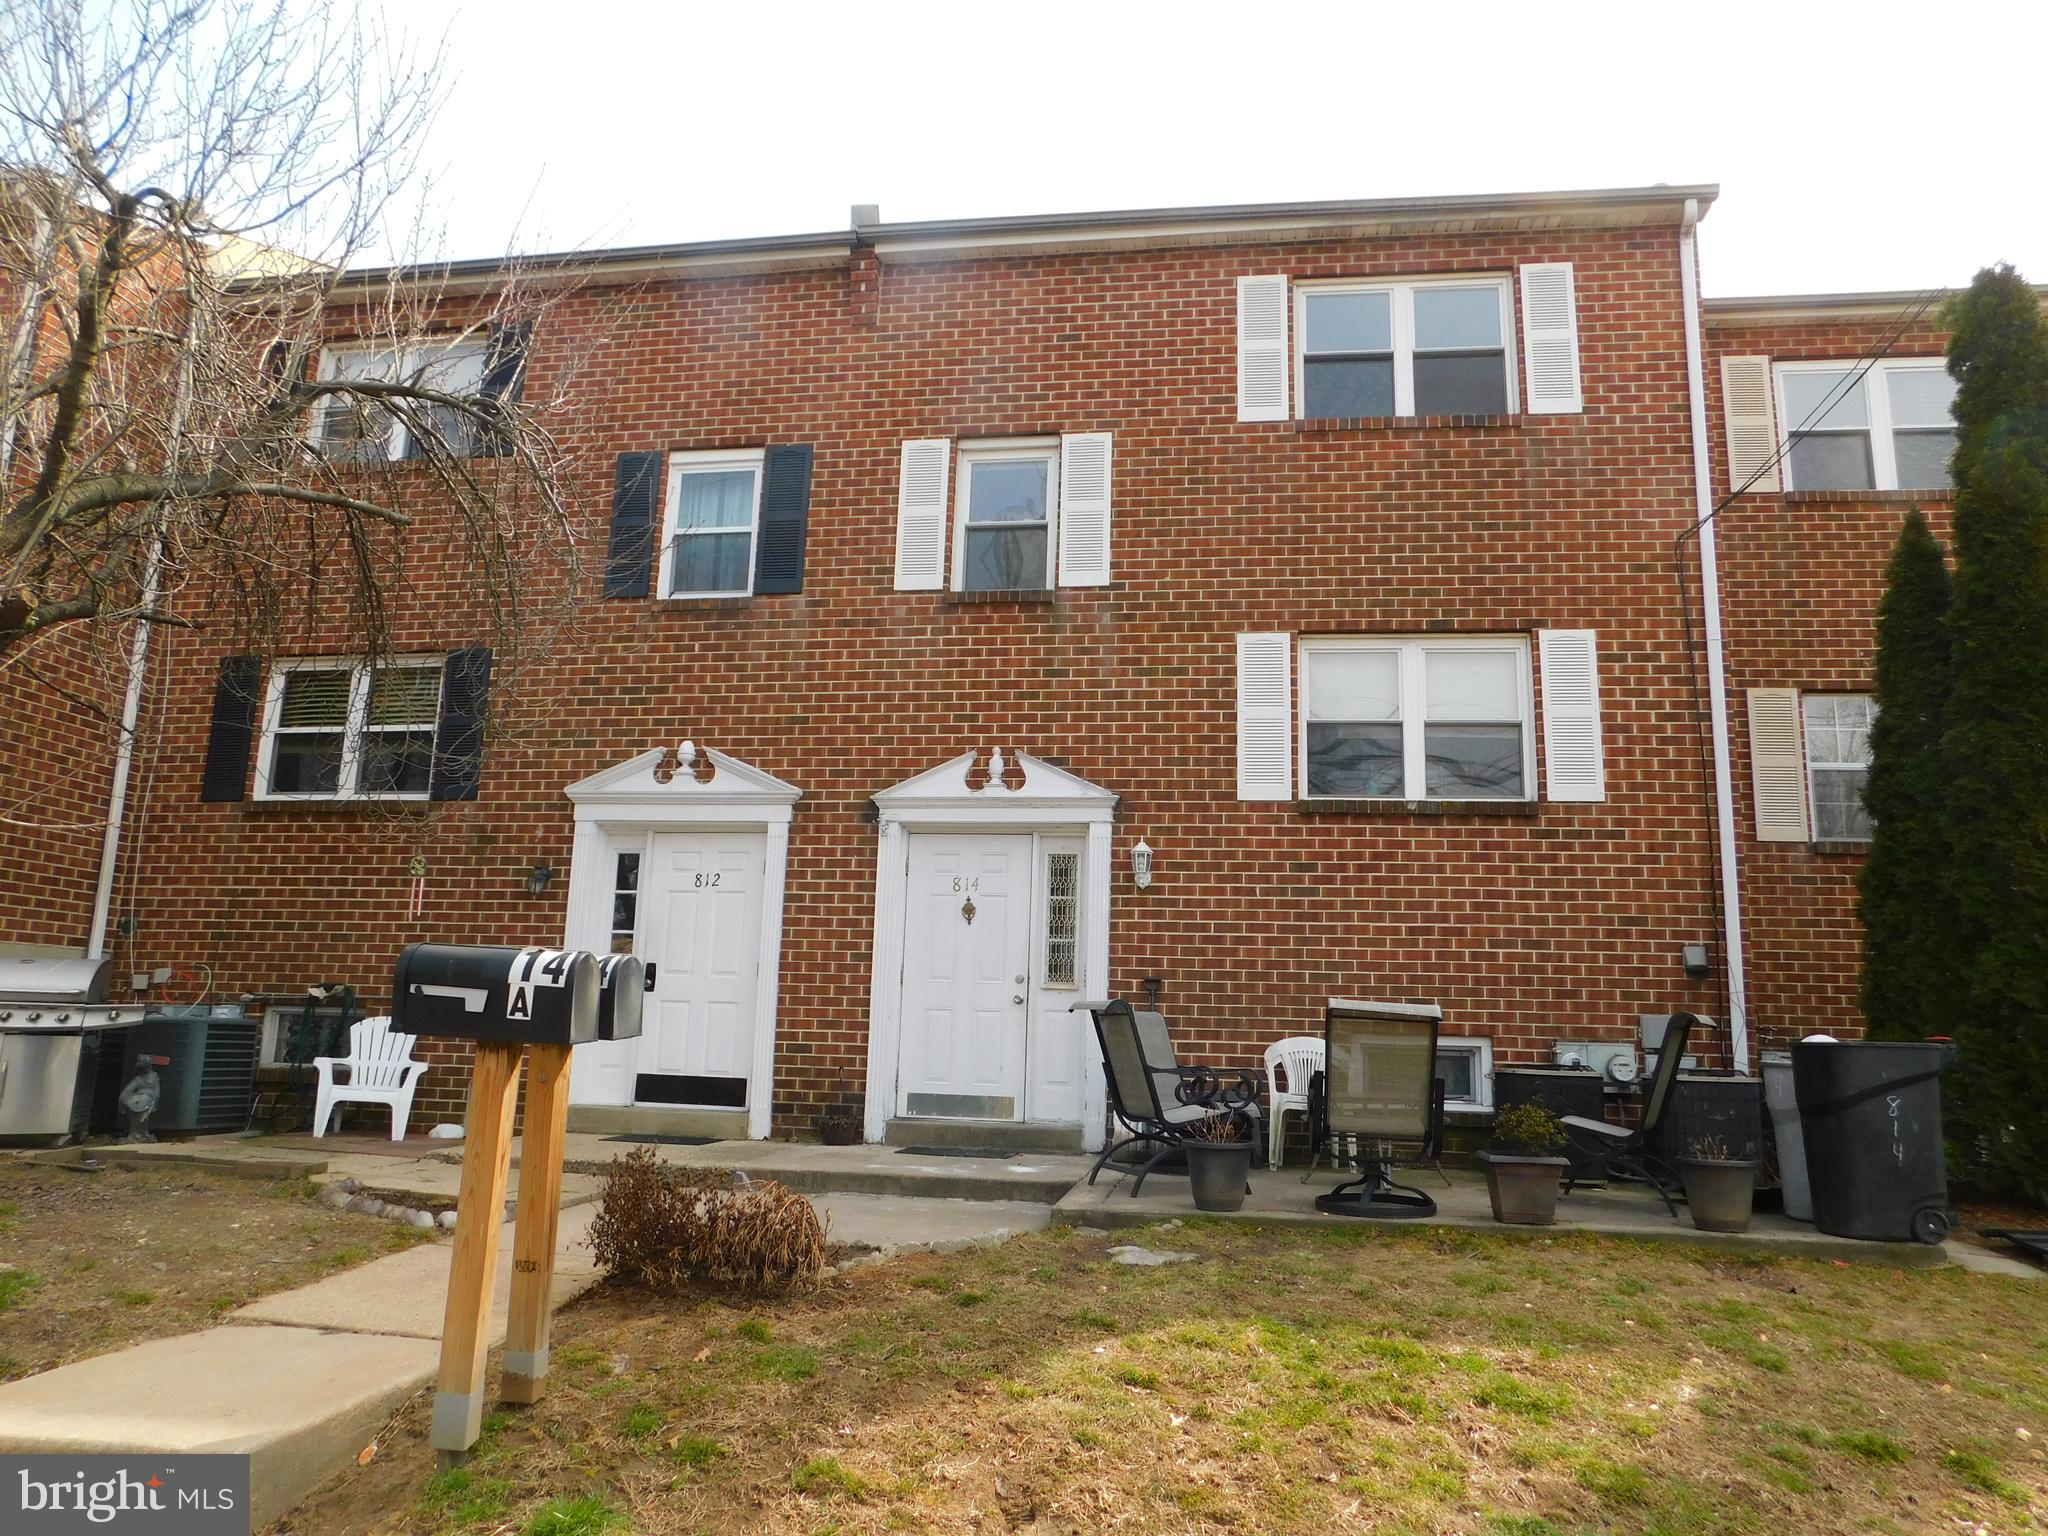 Terrific Duplex  in Upper Darby School District.   Both units  have a large living room, dining area, kitchen, bath and two bedrooms.  There is a shared basement with laundry hook ups for each unit. Attached two car garage, one for each tenant, additional parking off street behind garages.  Convenient location, walk to train and shopping.